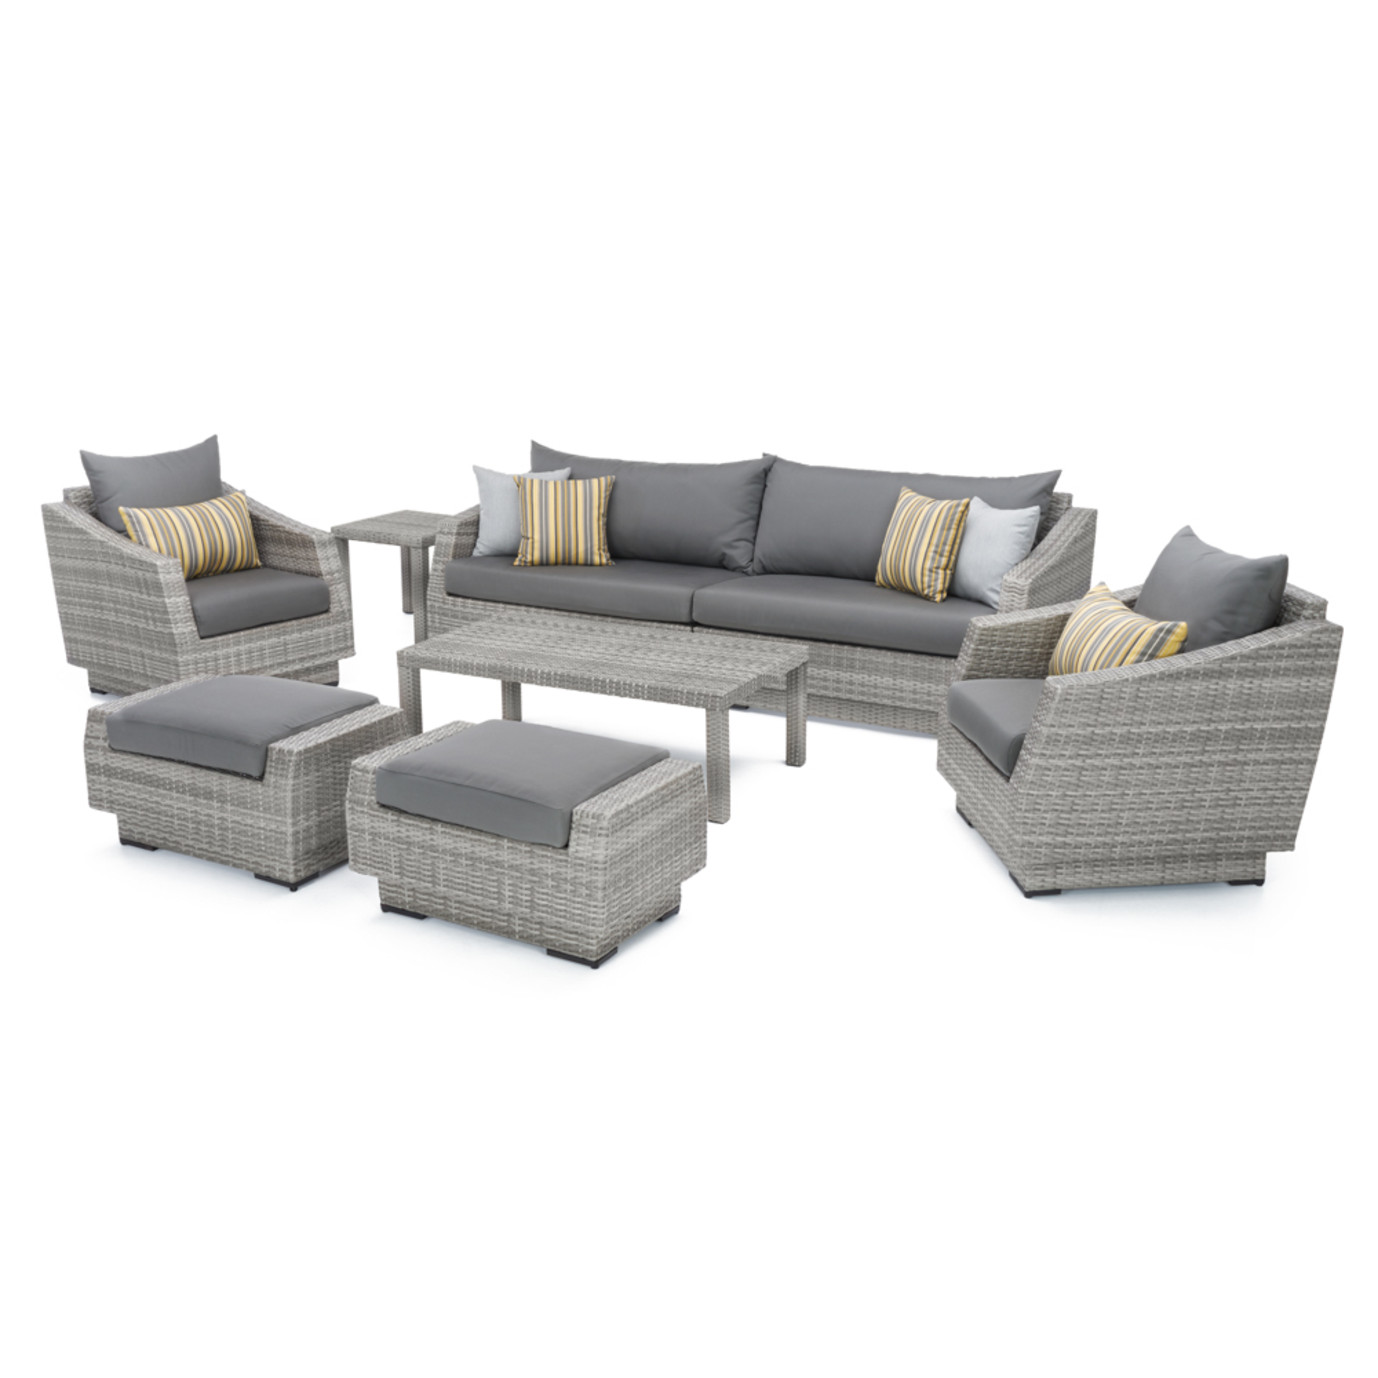 Cannes 8pc Sofa Set With Furniture Covers Charcoal Grey